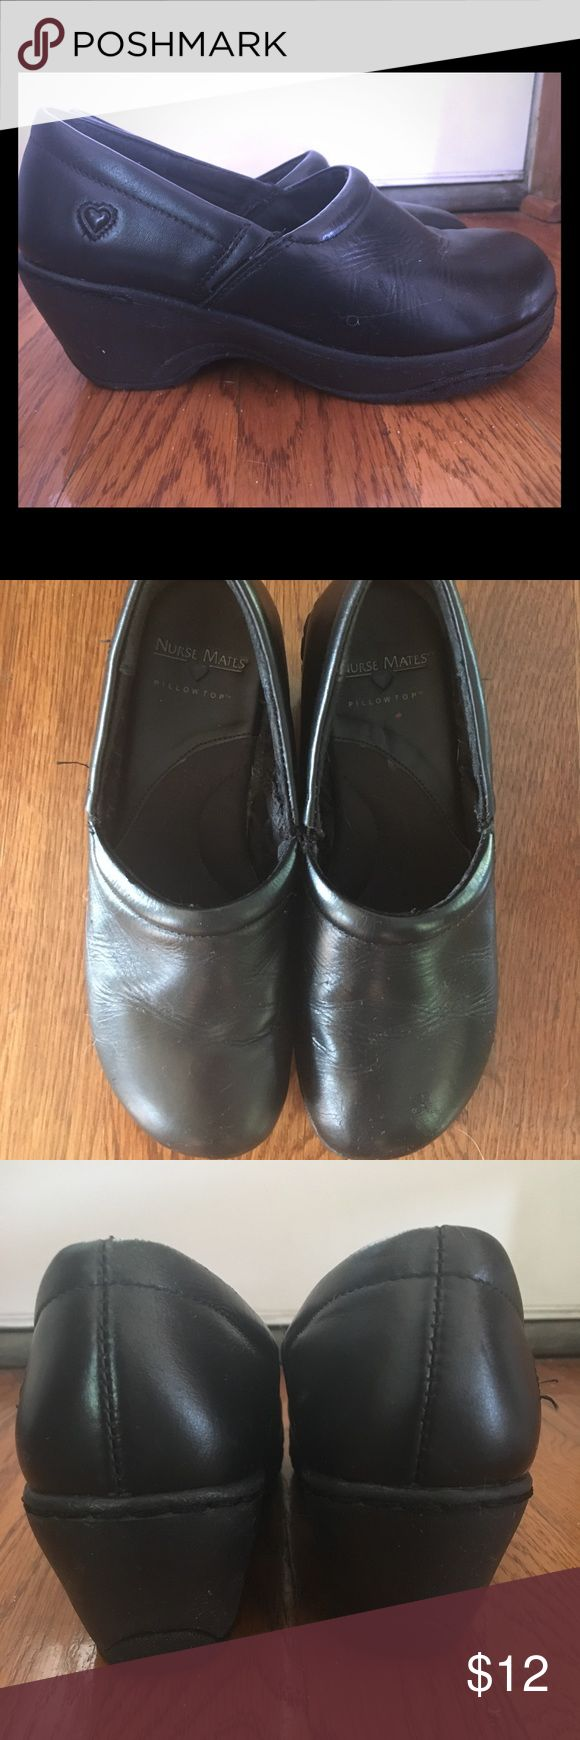 Nurse Mates Nursing Clogs Black leather with pillow top insole.  Used but still in great condition.  Non-skid sole and very comfortable Nurse Mates Shoes Mules & Clogs